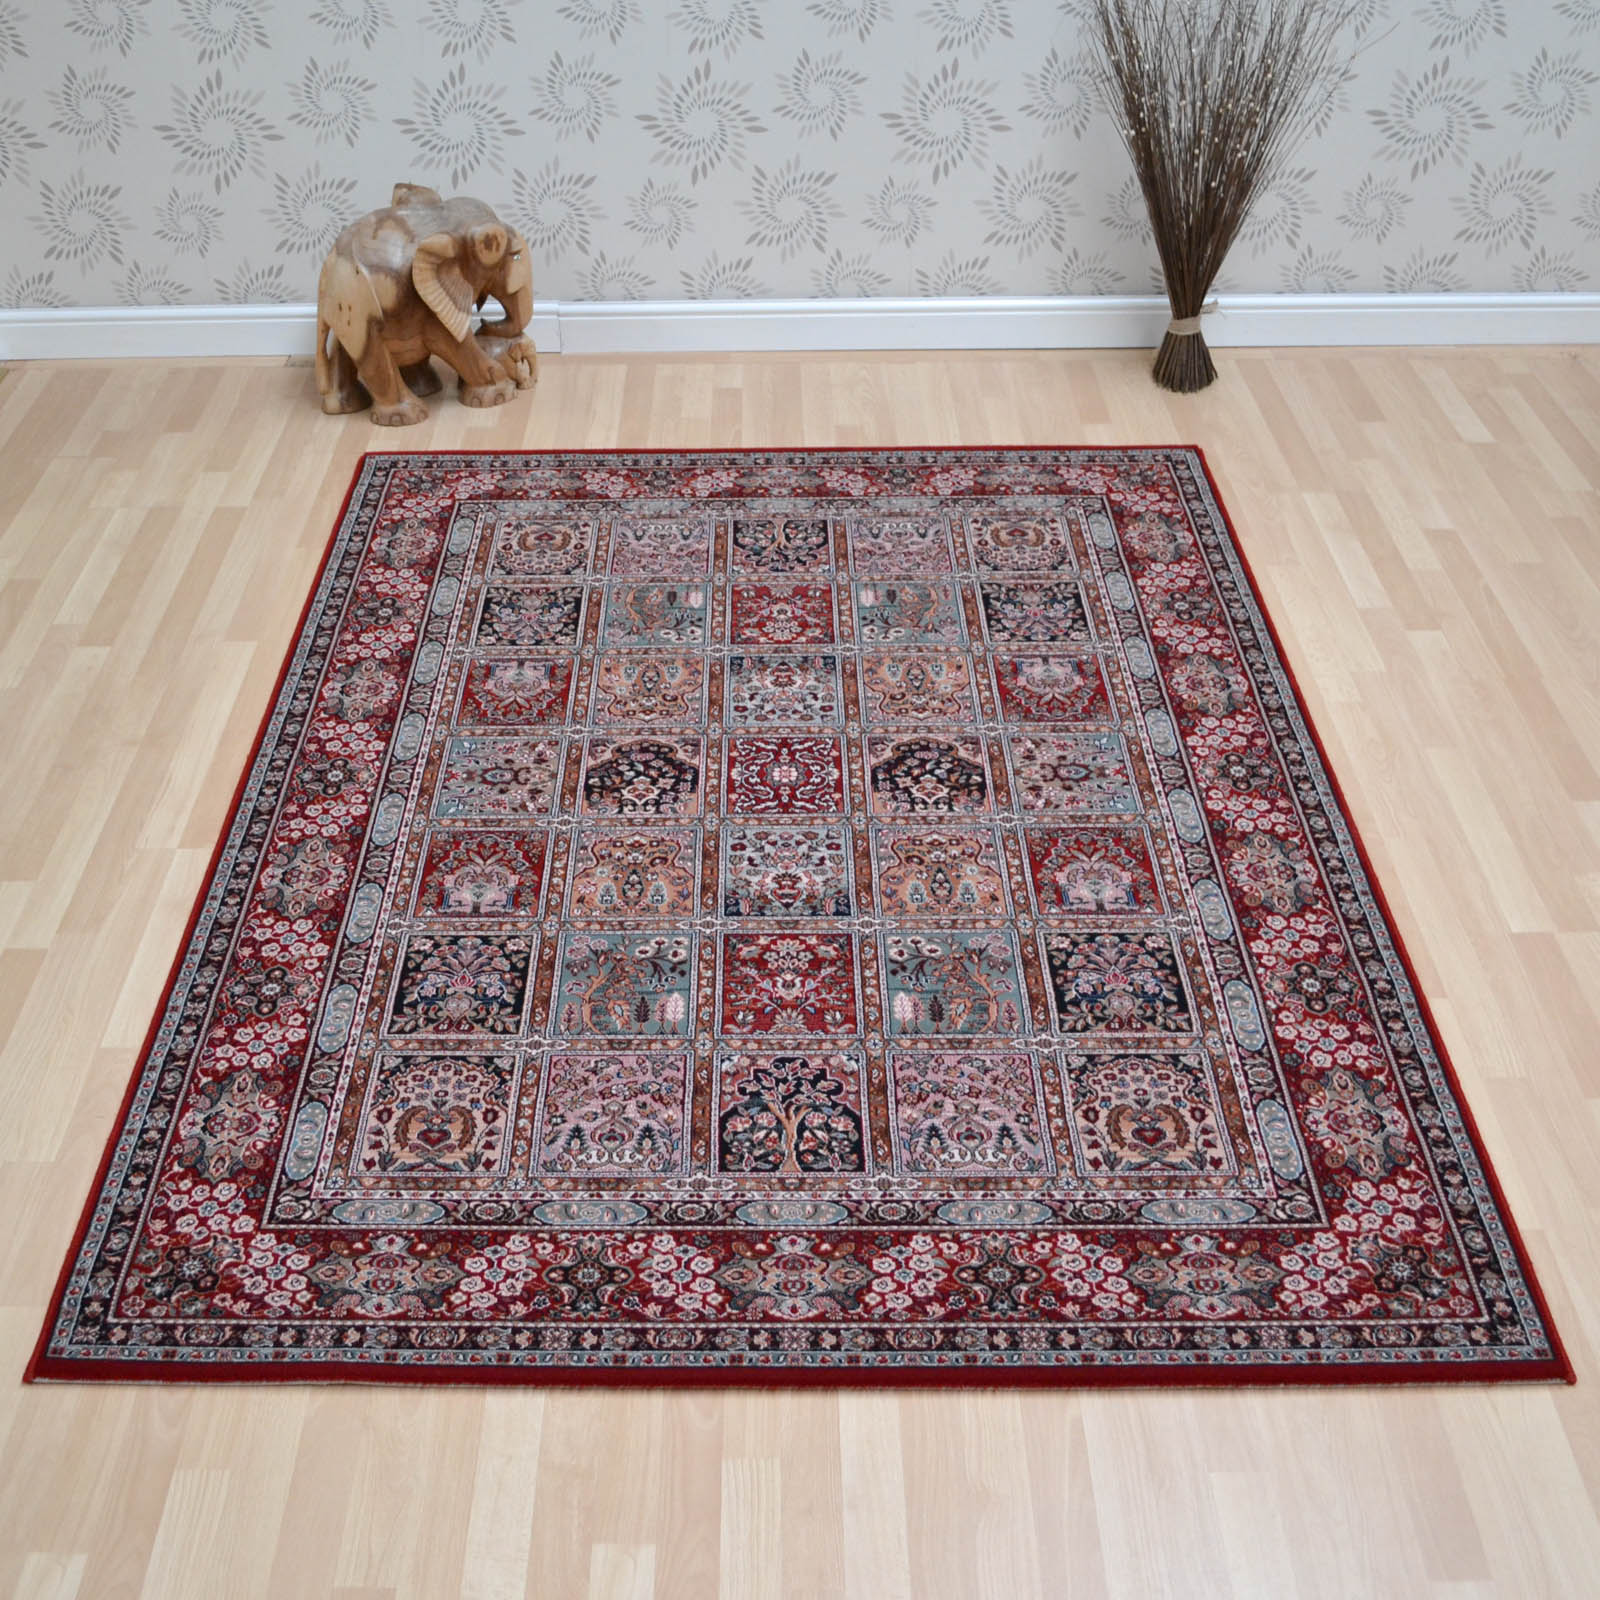 Nain Rugs 1258 677 Red